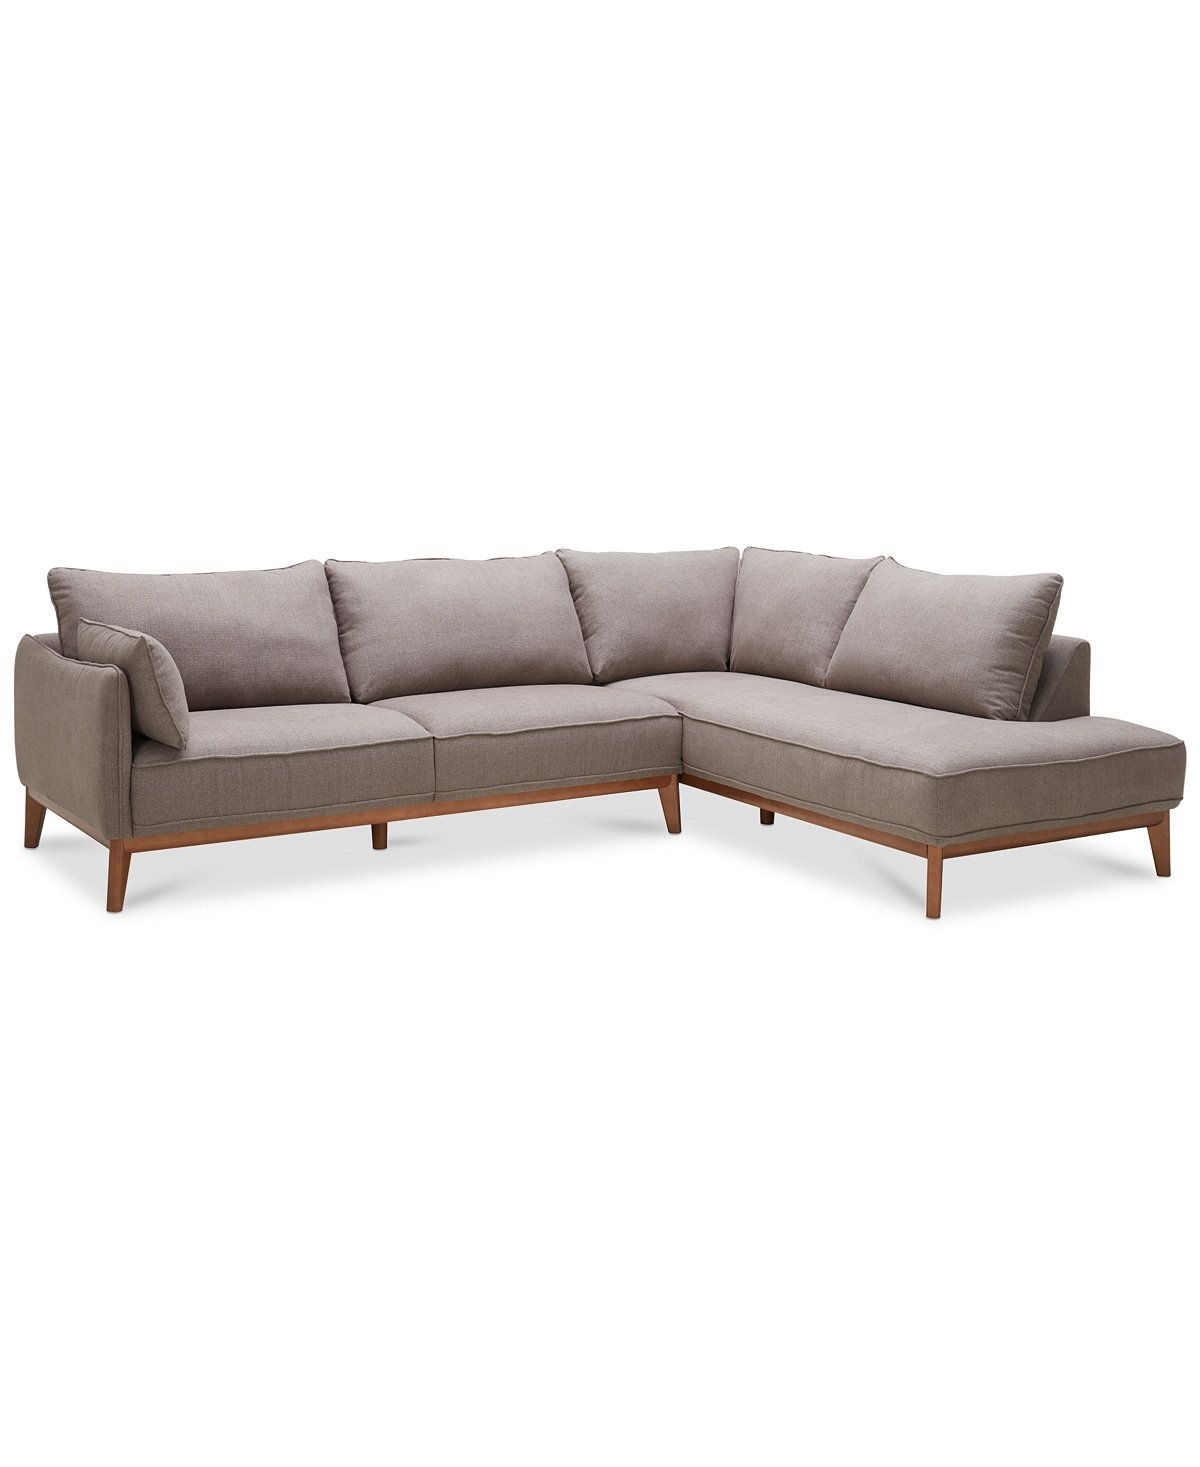 Jollene 113 2-Pc. Sectional, Created For Macy's | Sofas | Pinterest for Turdur 2 Piece Sectionals With Laf Loveseat (Image 10 of 30)